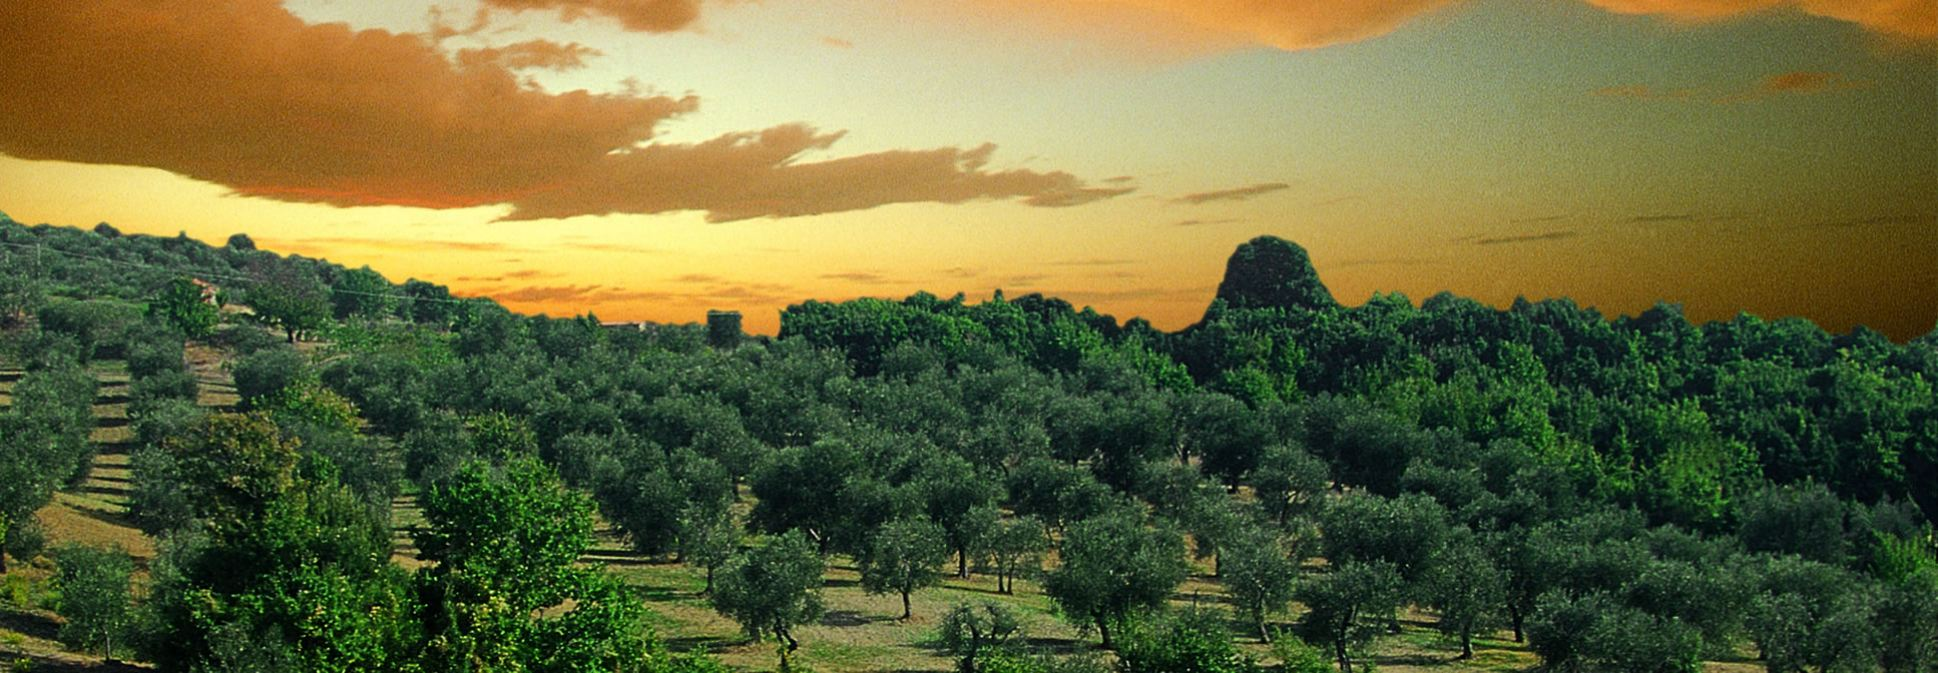 Tuscan hills with olive trees panorama